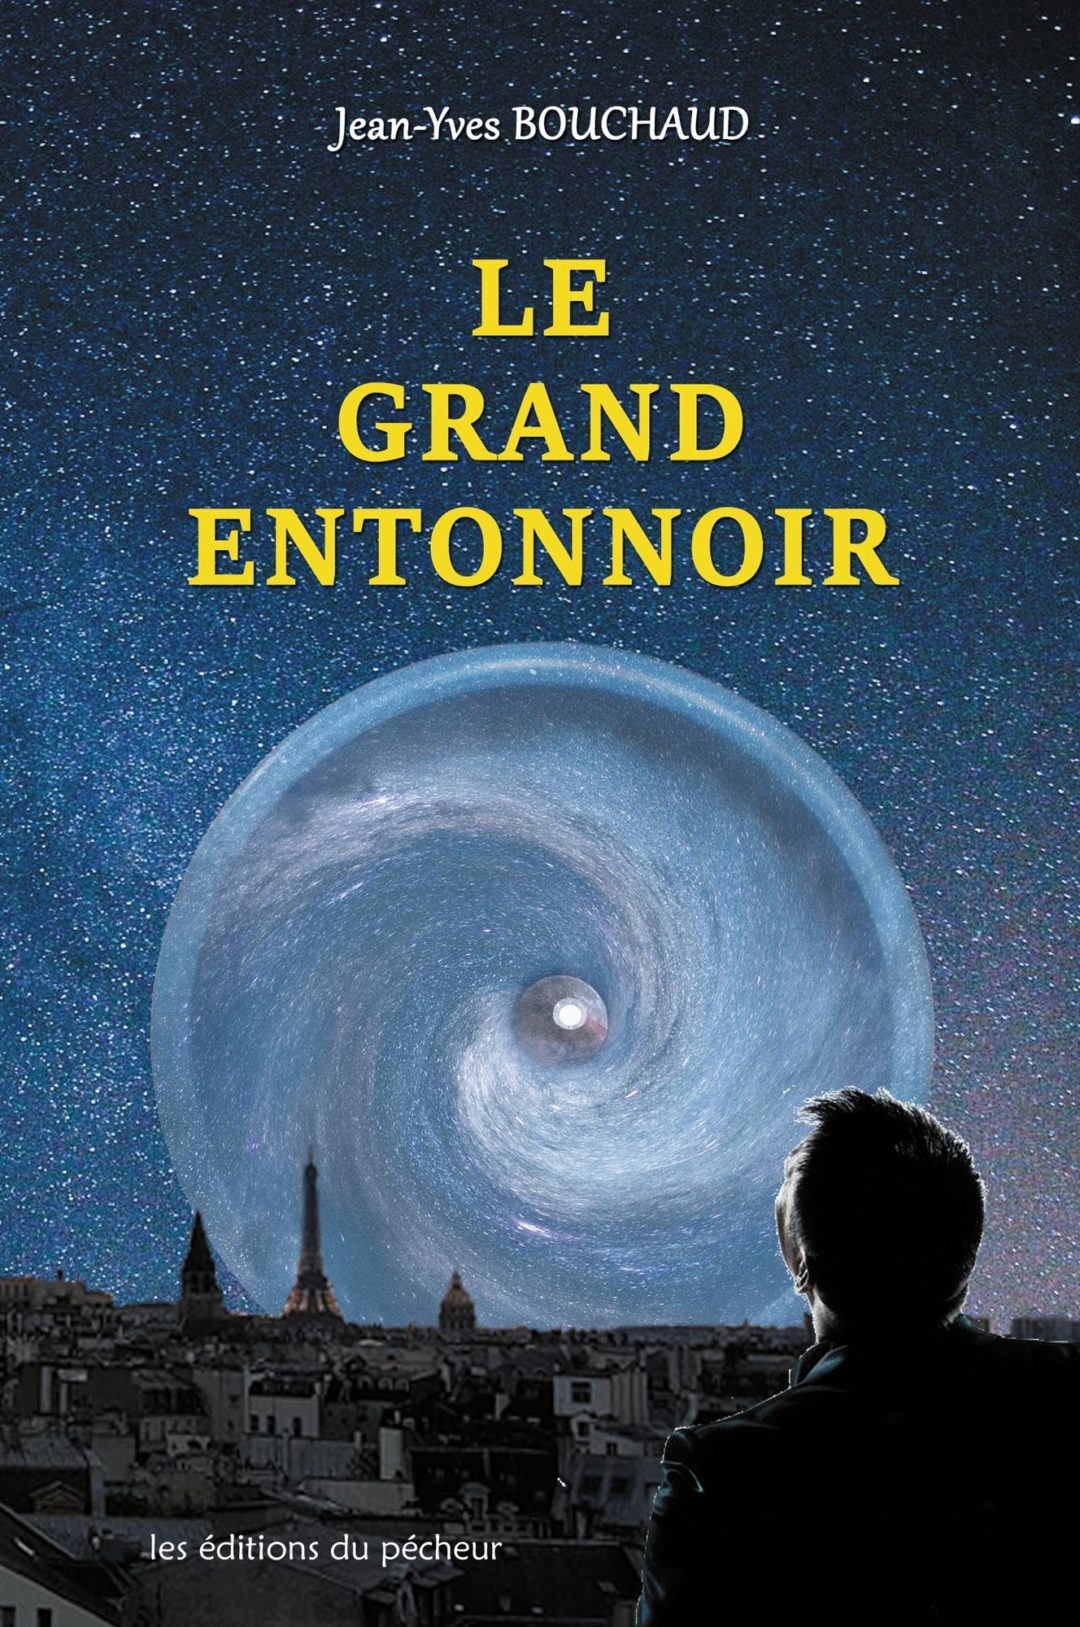 Le grand entonnoir